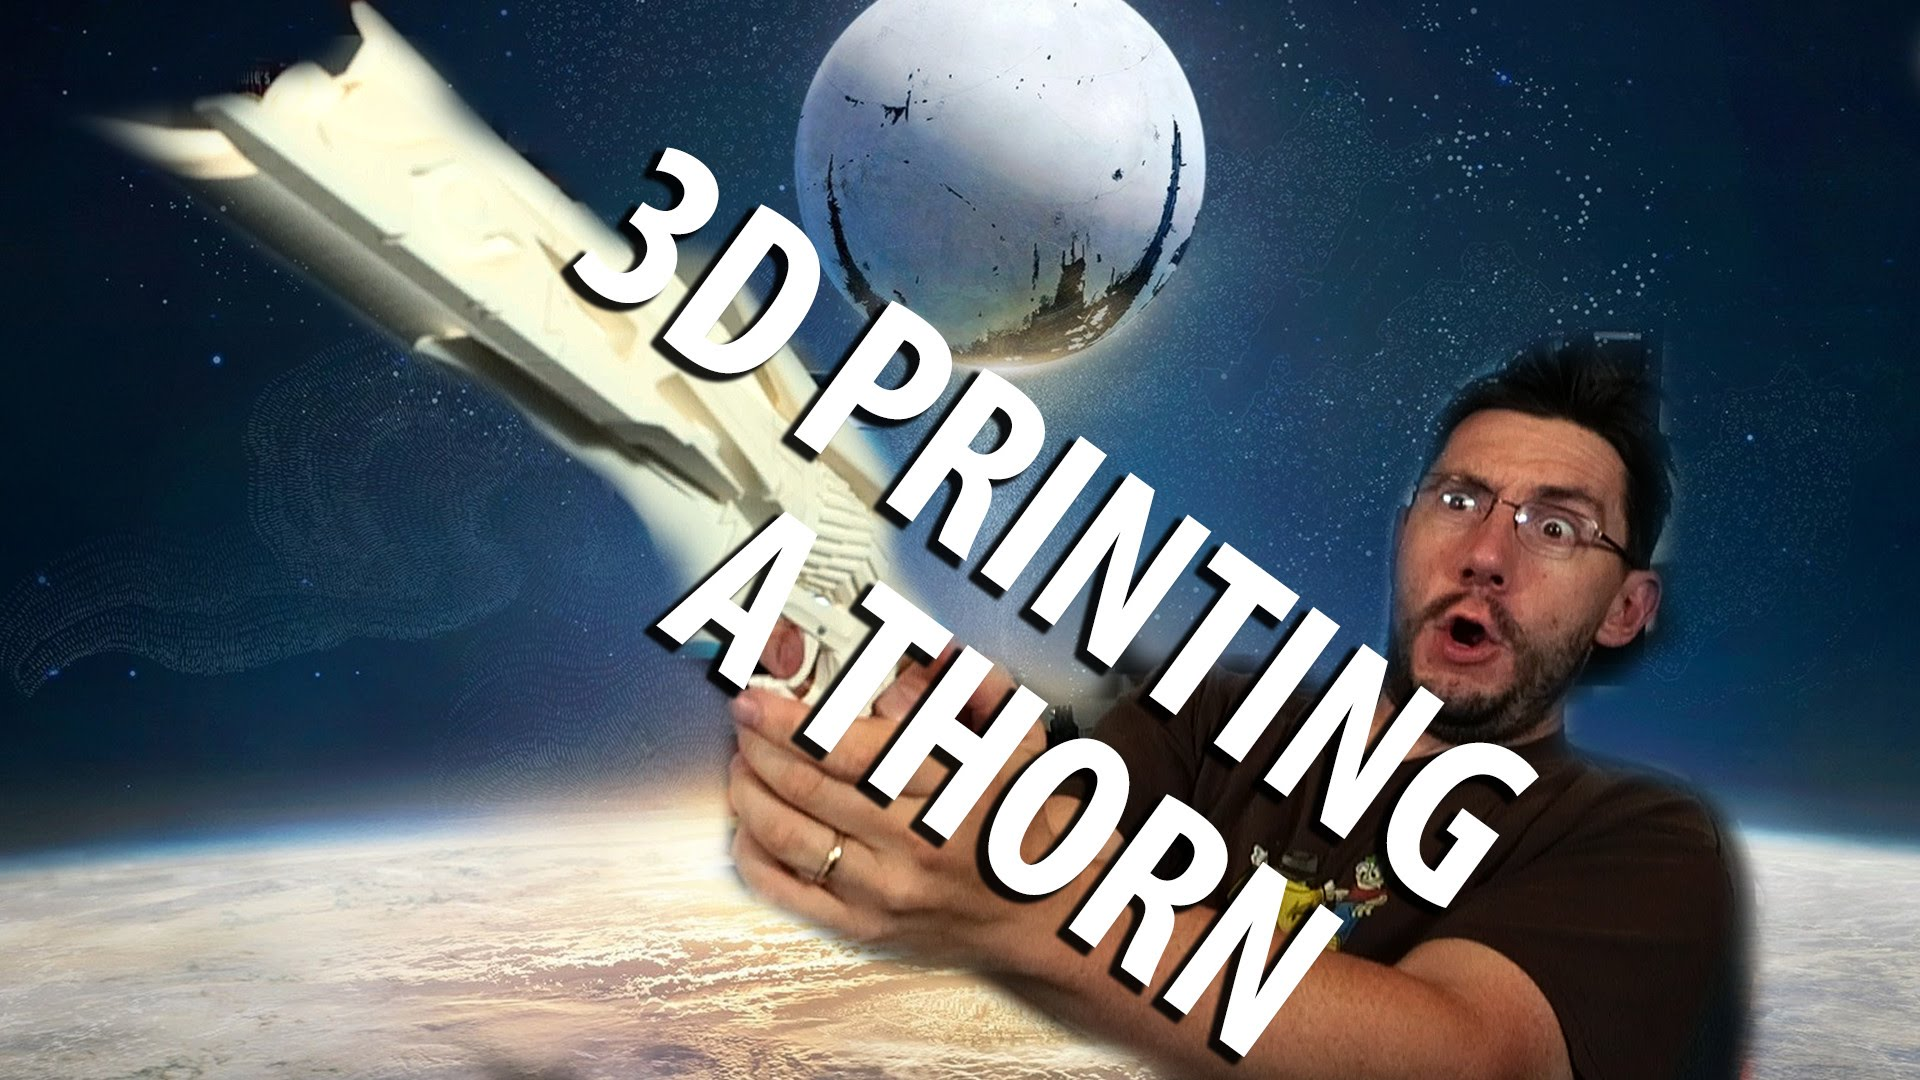 3D Printing: Assembling Thorn from Destiny